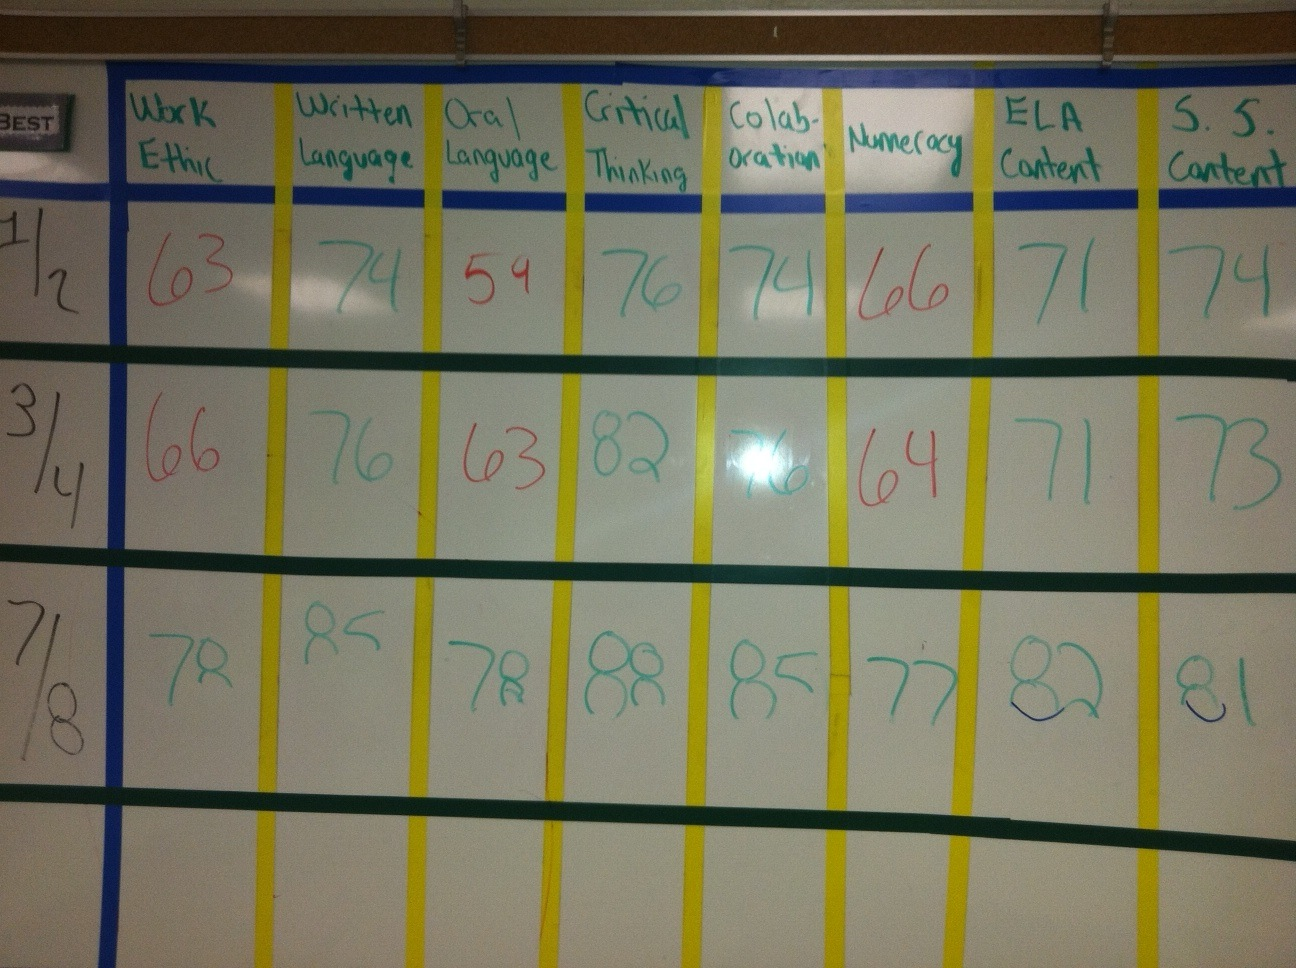 21st Century Skills Tracker: Work Ethic, Writing, Critical Thing, and more